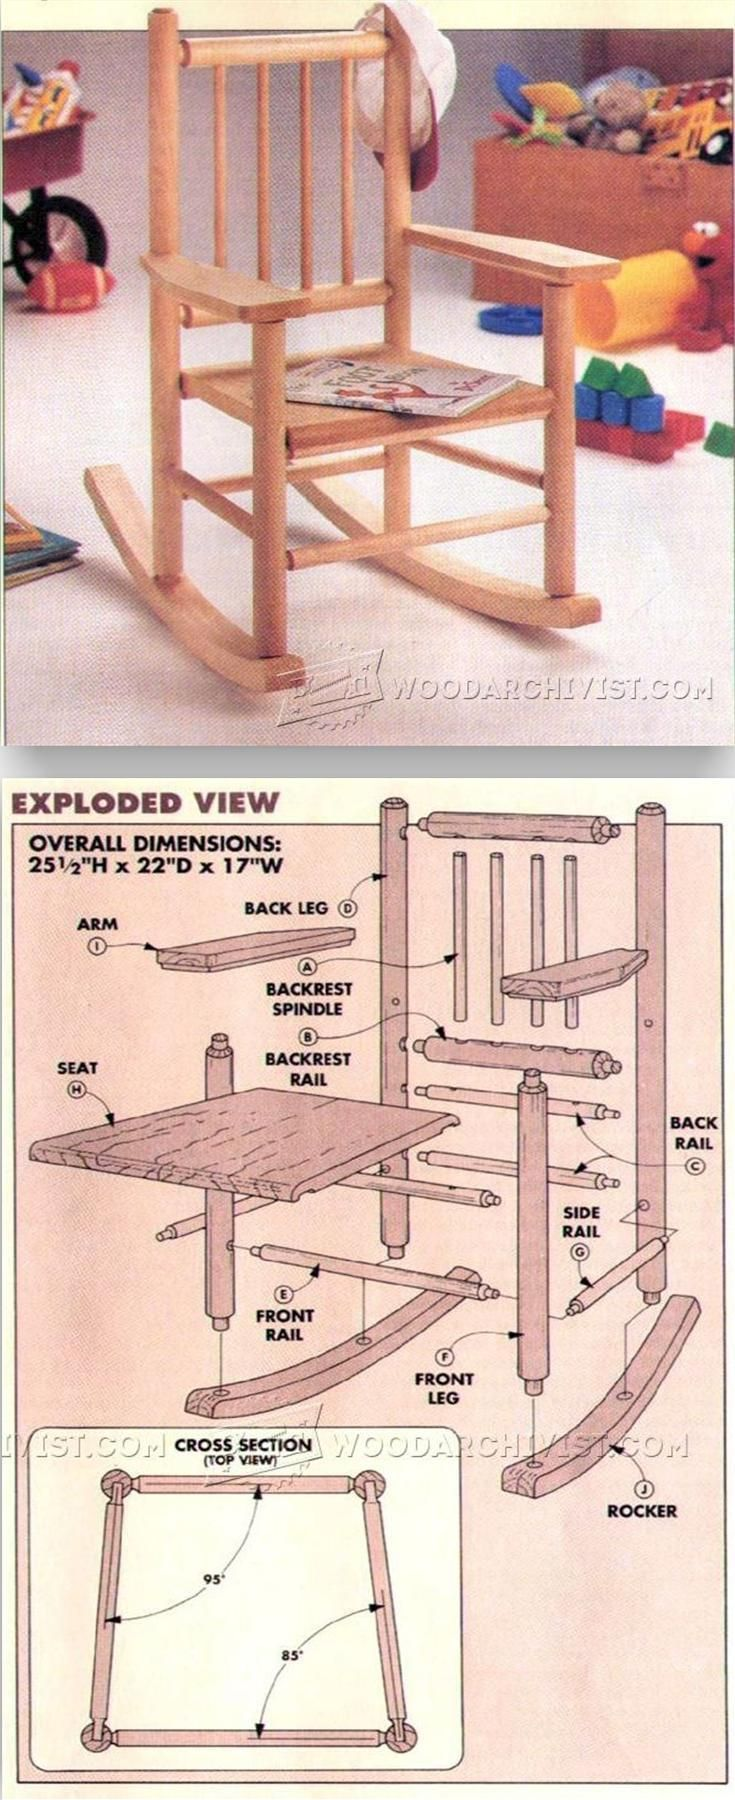 How to make a simple wooden rocking chair - Childs Rocking Chair Plans Children S Furniture Plans And Projects Woodarchivist Com